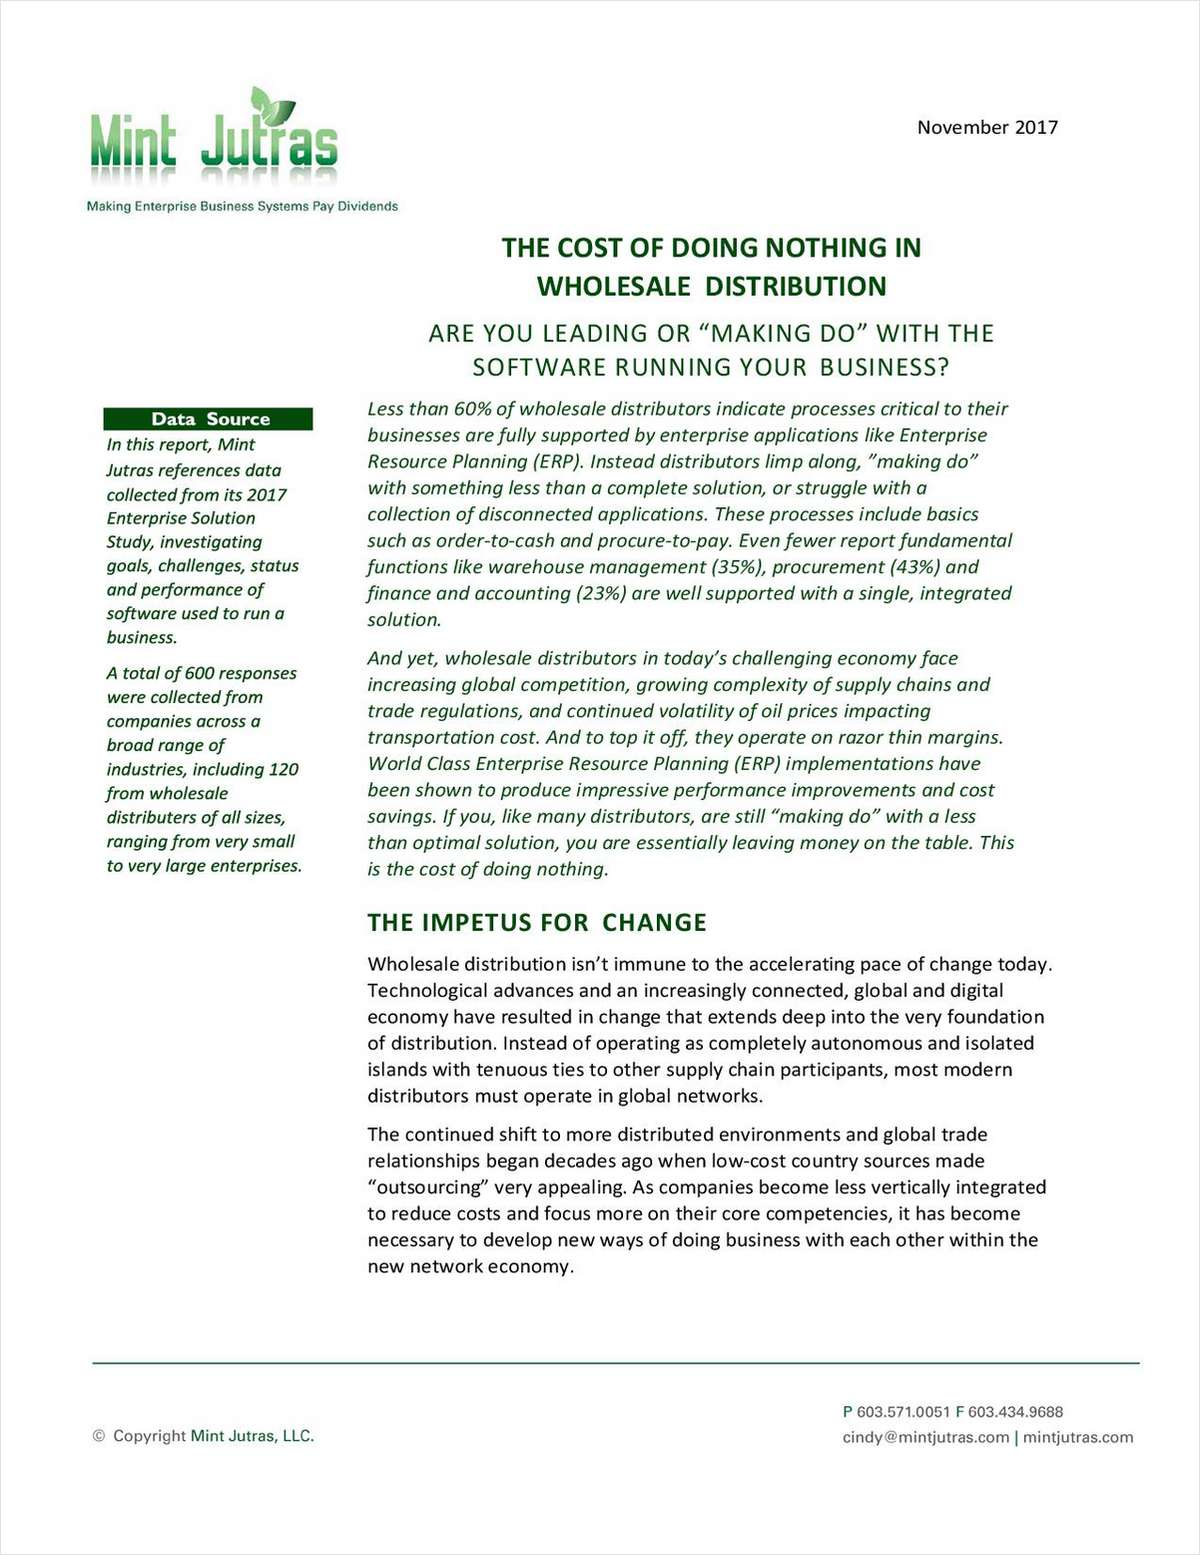 The Cost of Doing Nothing in Wholesale Distribution